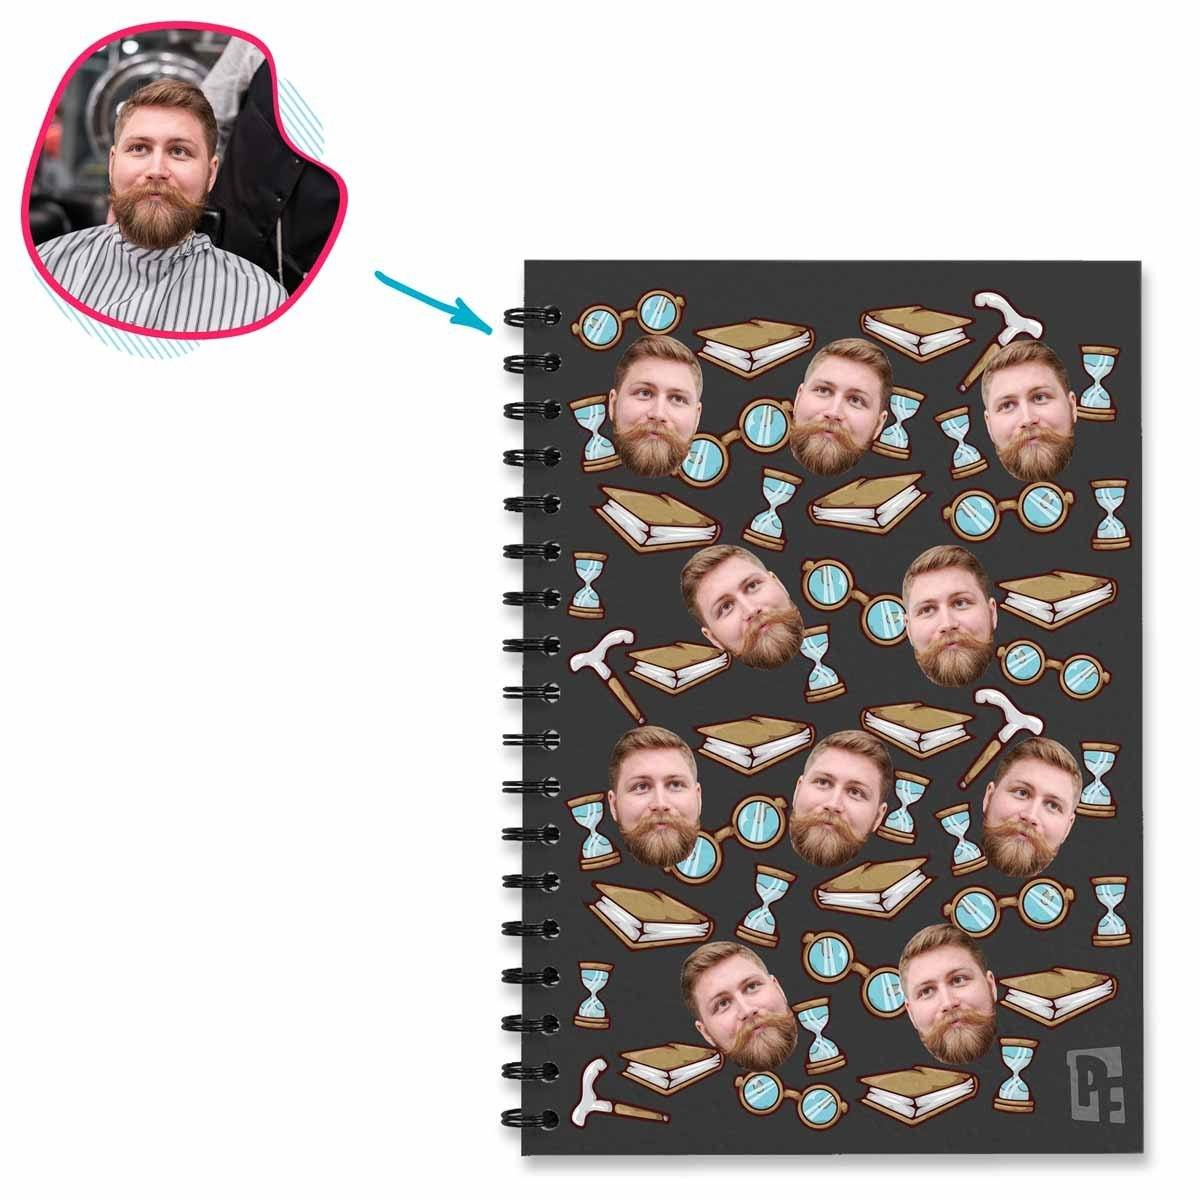 Dark Auntie personalized notebook with photo of face printed on them